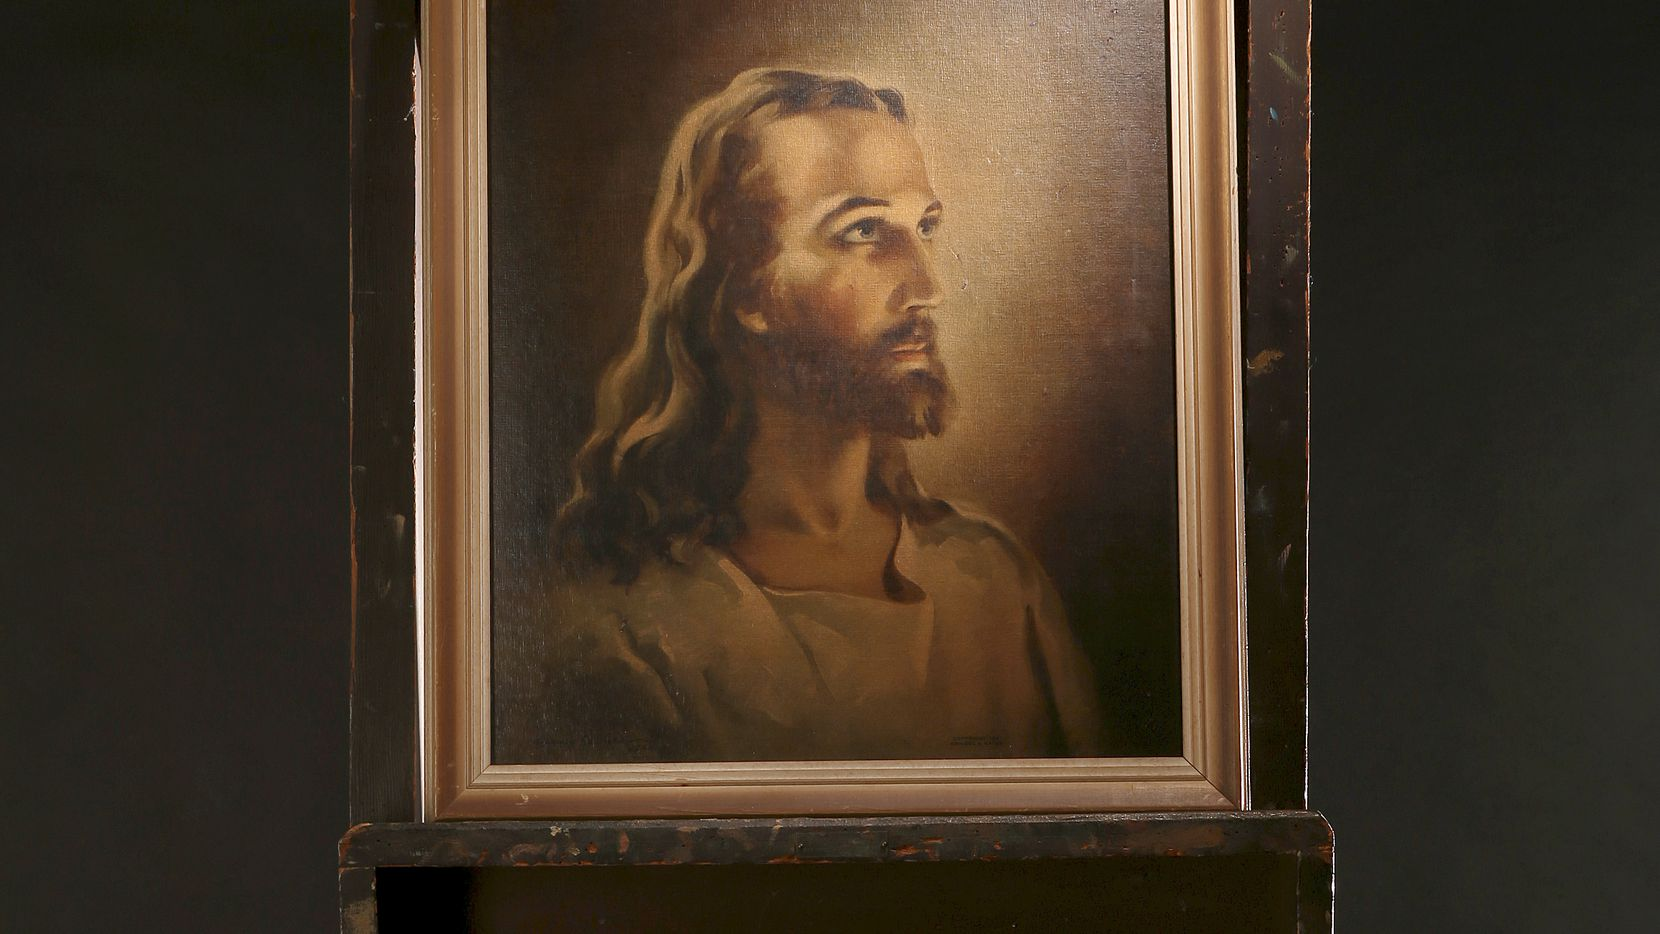 A replica of the Head of Christ by Warner Sallman is shown on Sallman's easel, which his grandson Steve Sallman keeps in his Dallas home.